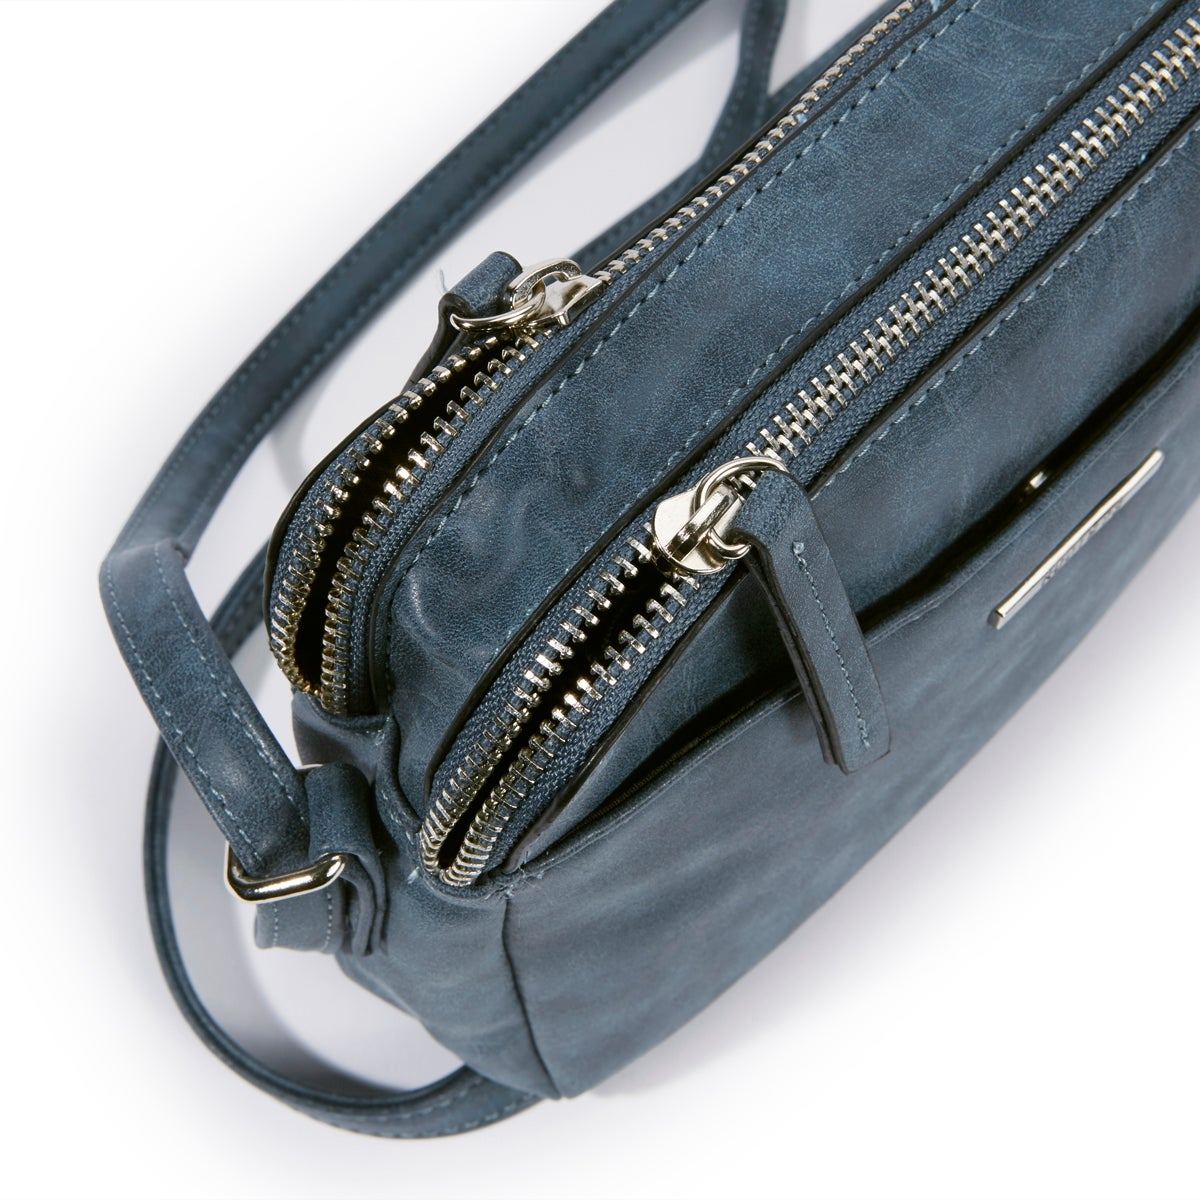 Lds Roots73 blue 2 compartment crossbody